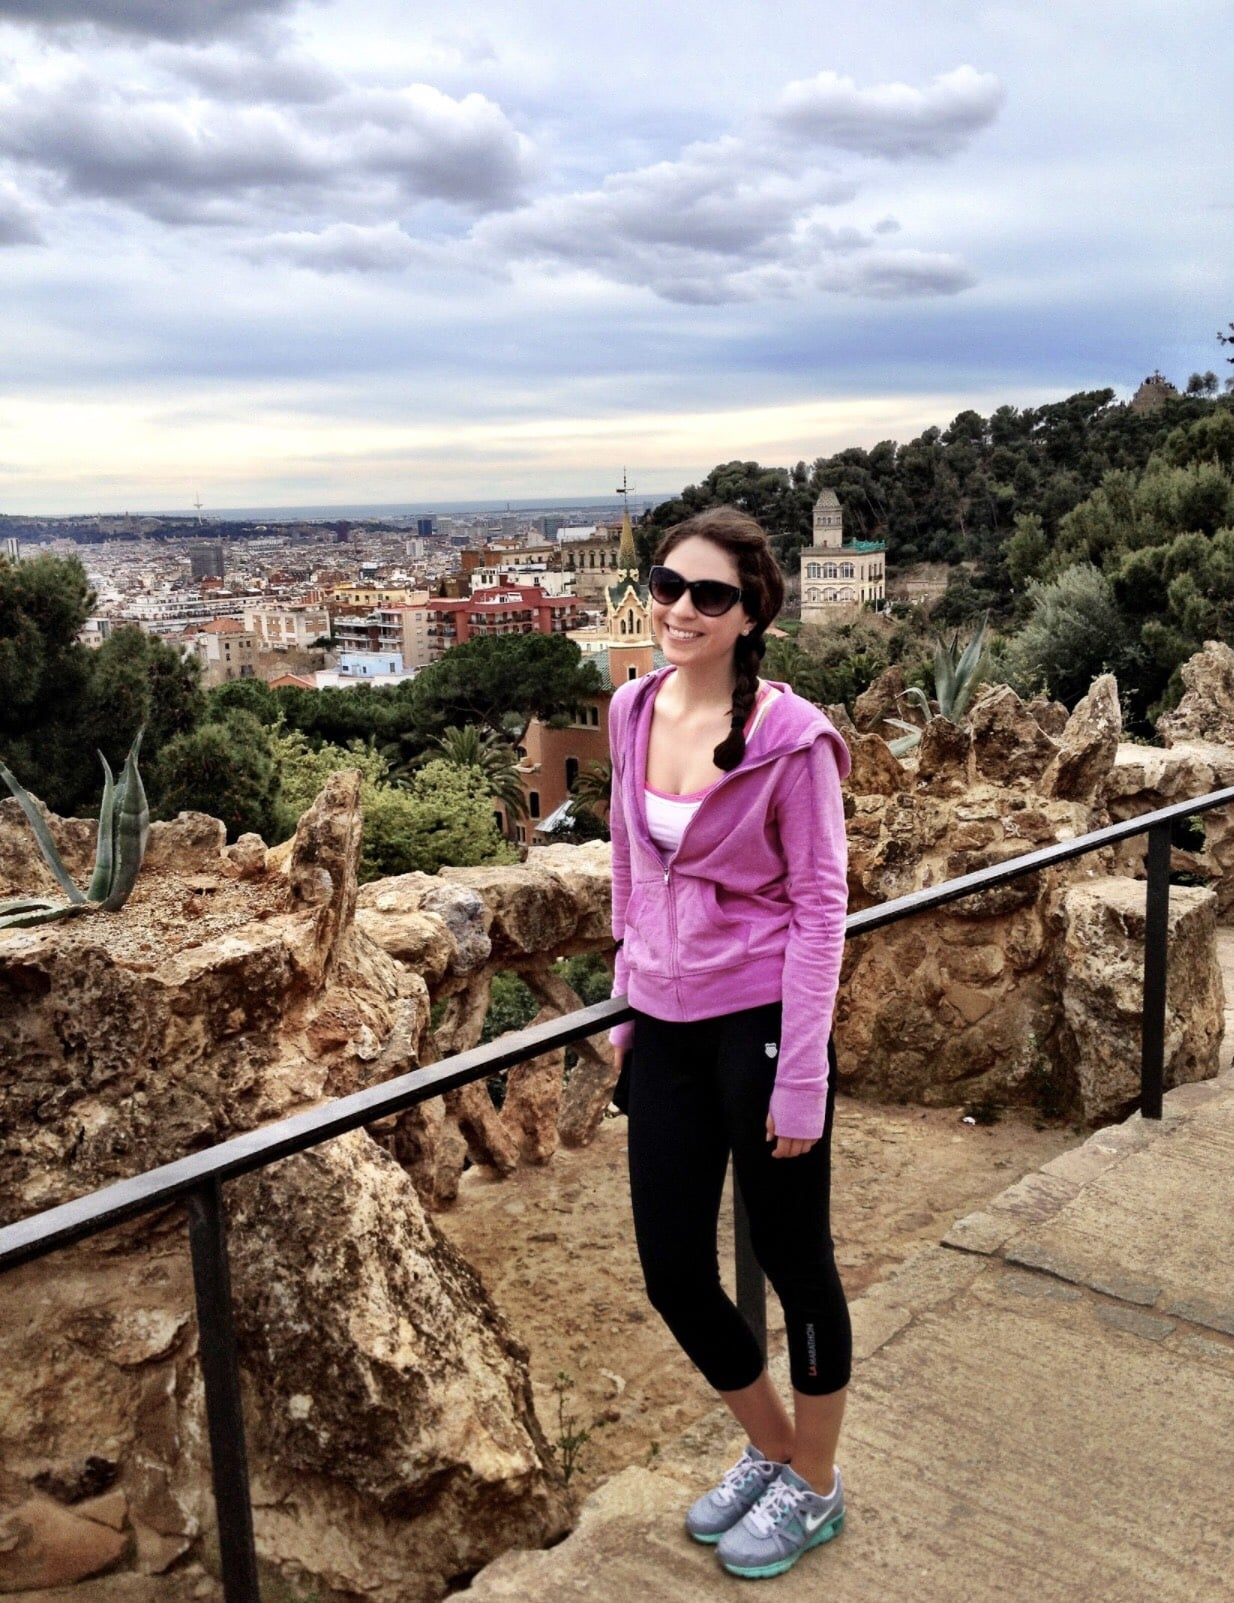 ade8819f9e4d Why You Should Wear Workout Clothing While Traveling